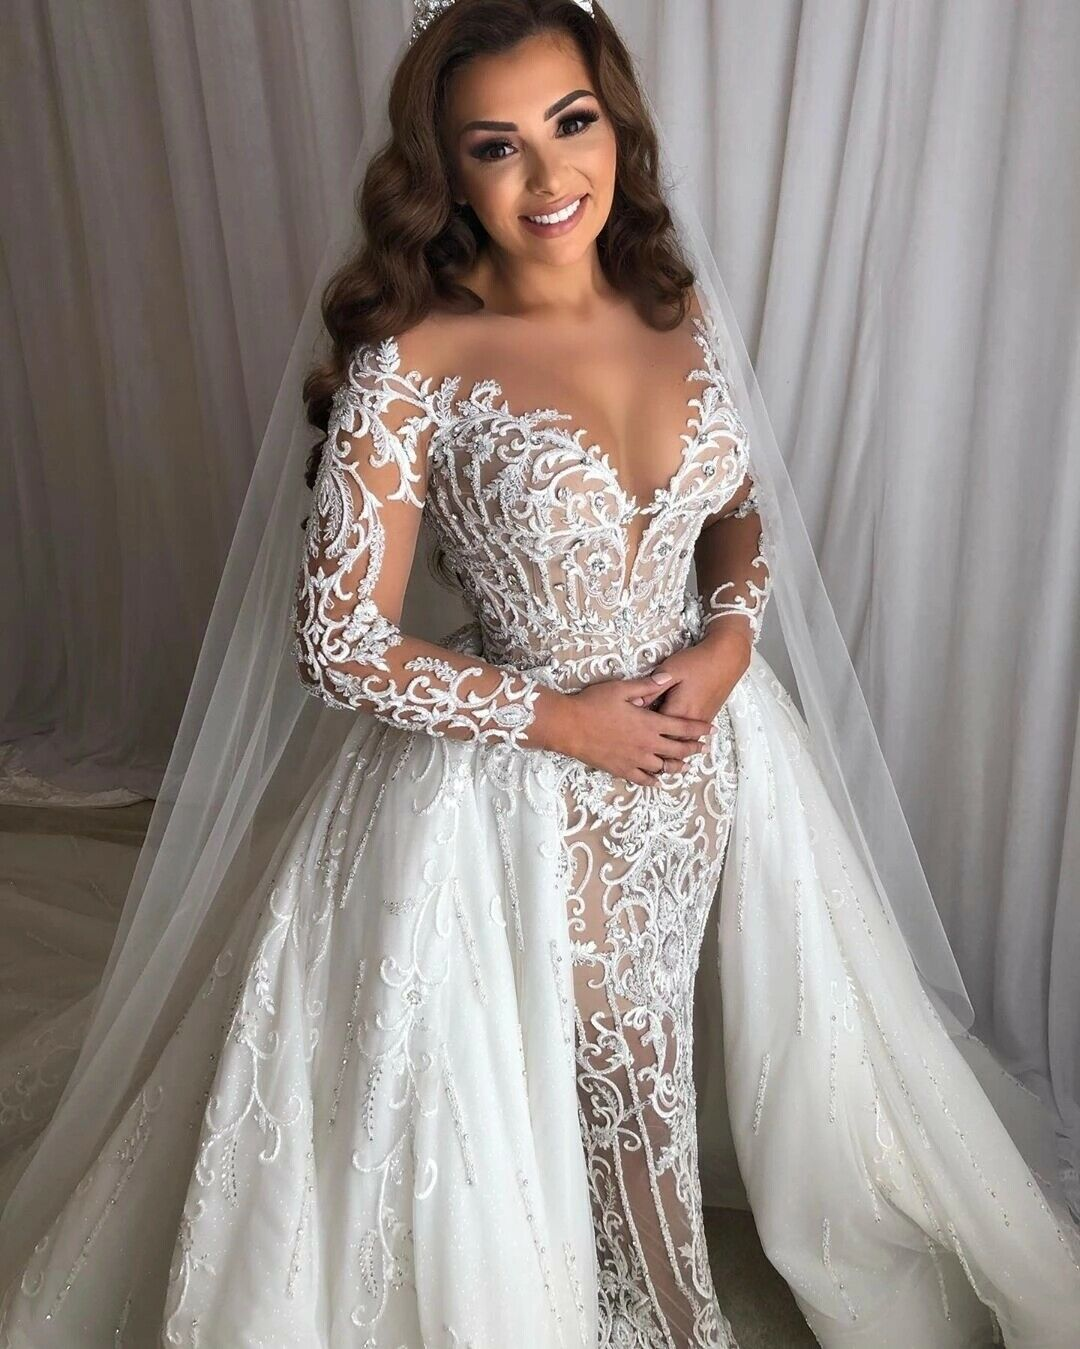 Mermaid Wedding Dresses with Removable Skirt Luxury Beaded Princess Bridal Gown